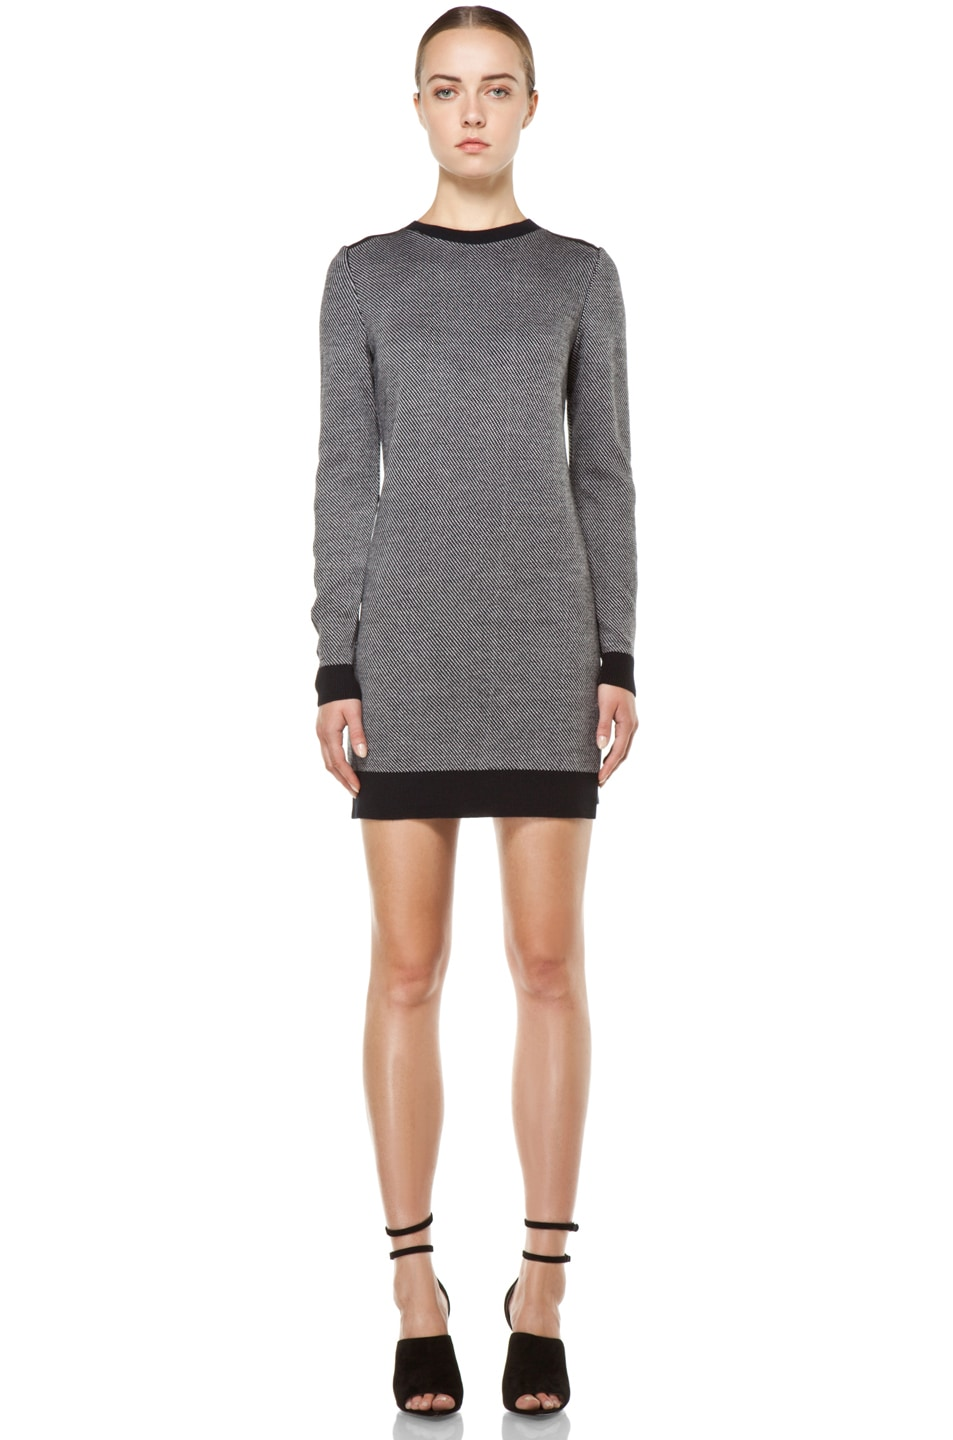 Image 1 of 3.1 phillip lim Tweed Stitch Dress with Ribbed Back in Midnight